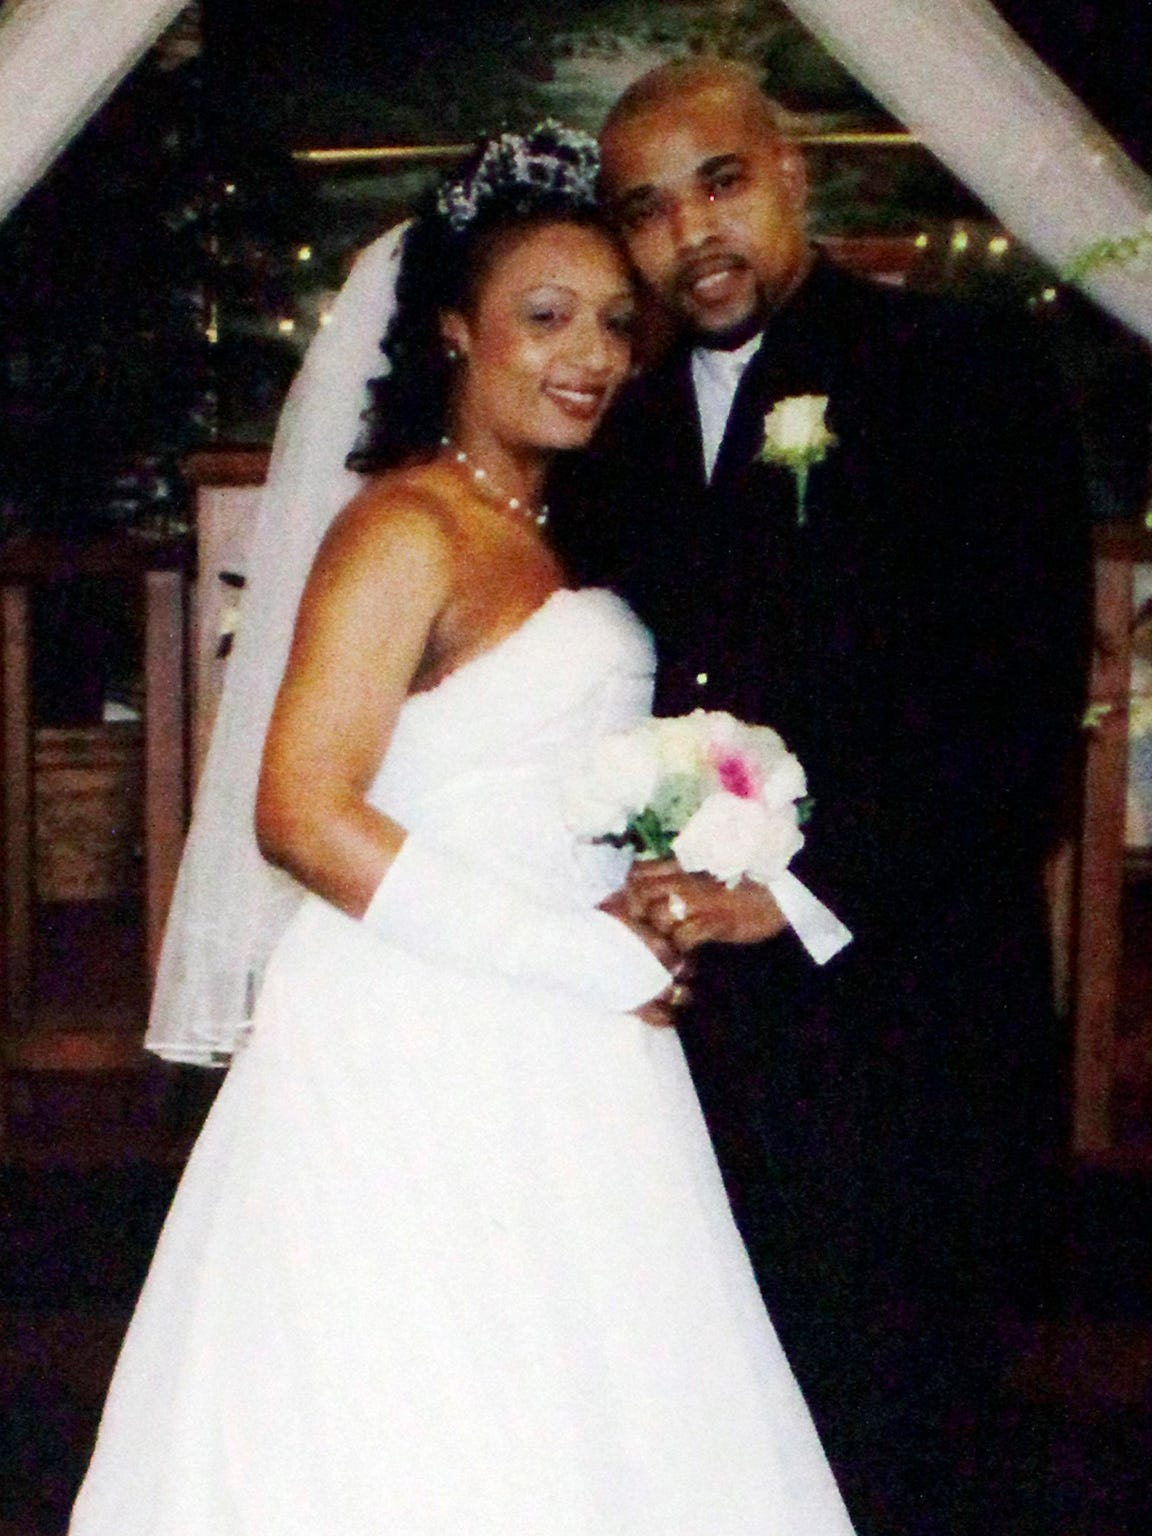 A photo taken from Mesac Damas and Guerline Damas' wedding at First Haitian Baptist Church on April 14, 2007.